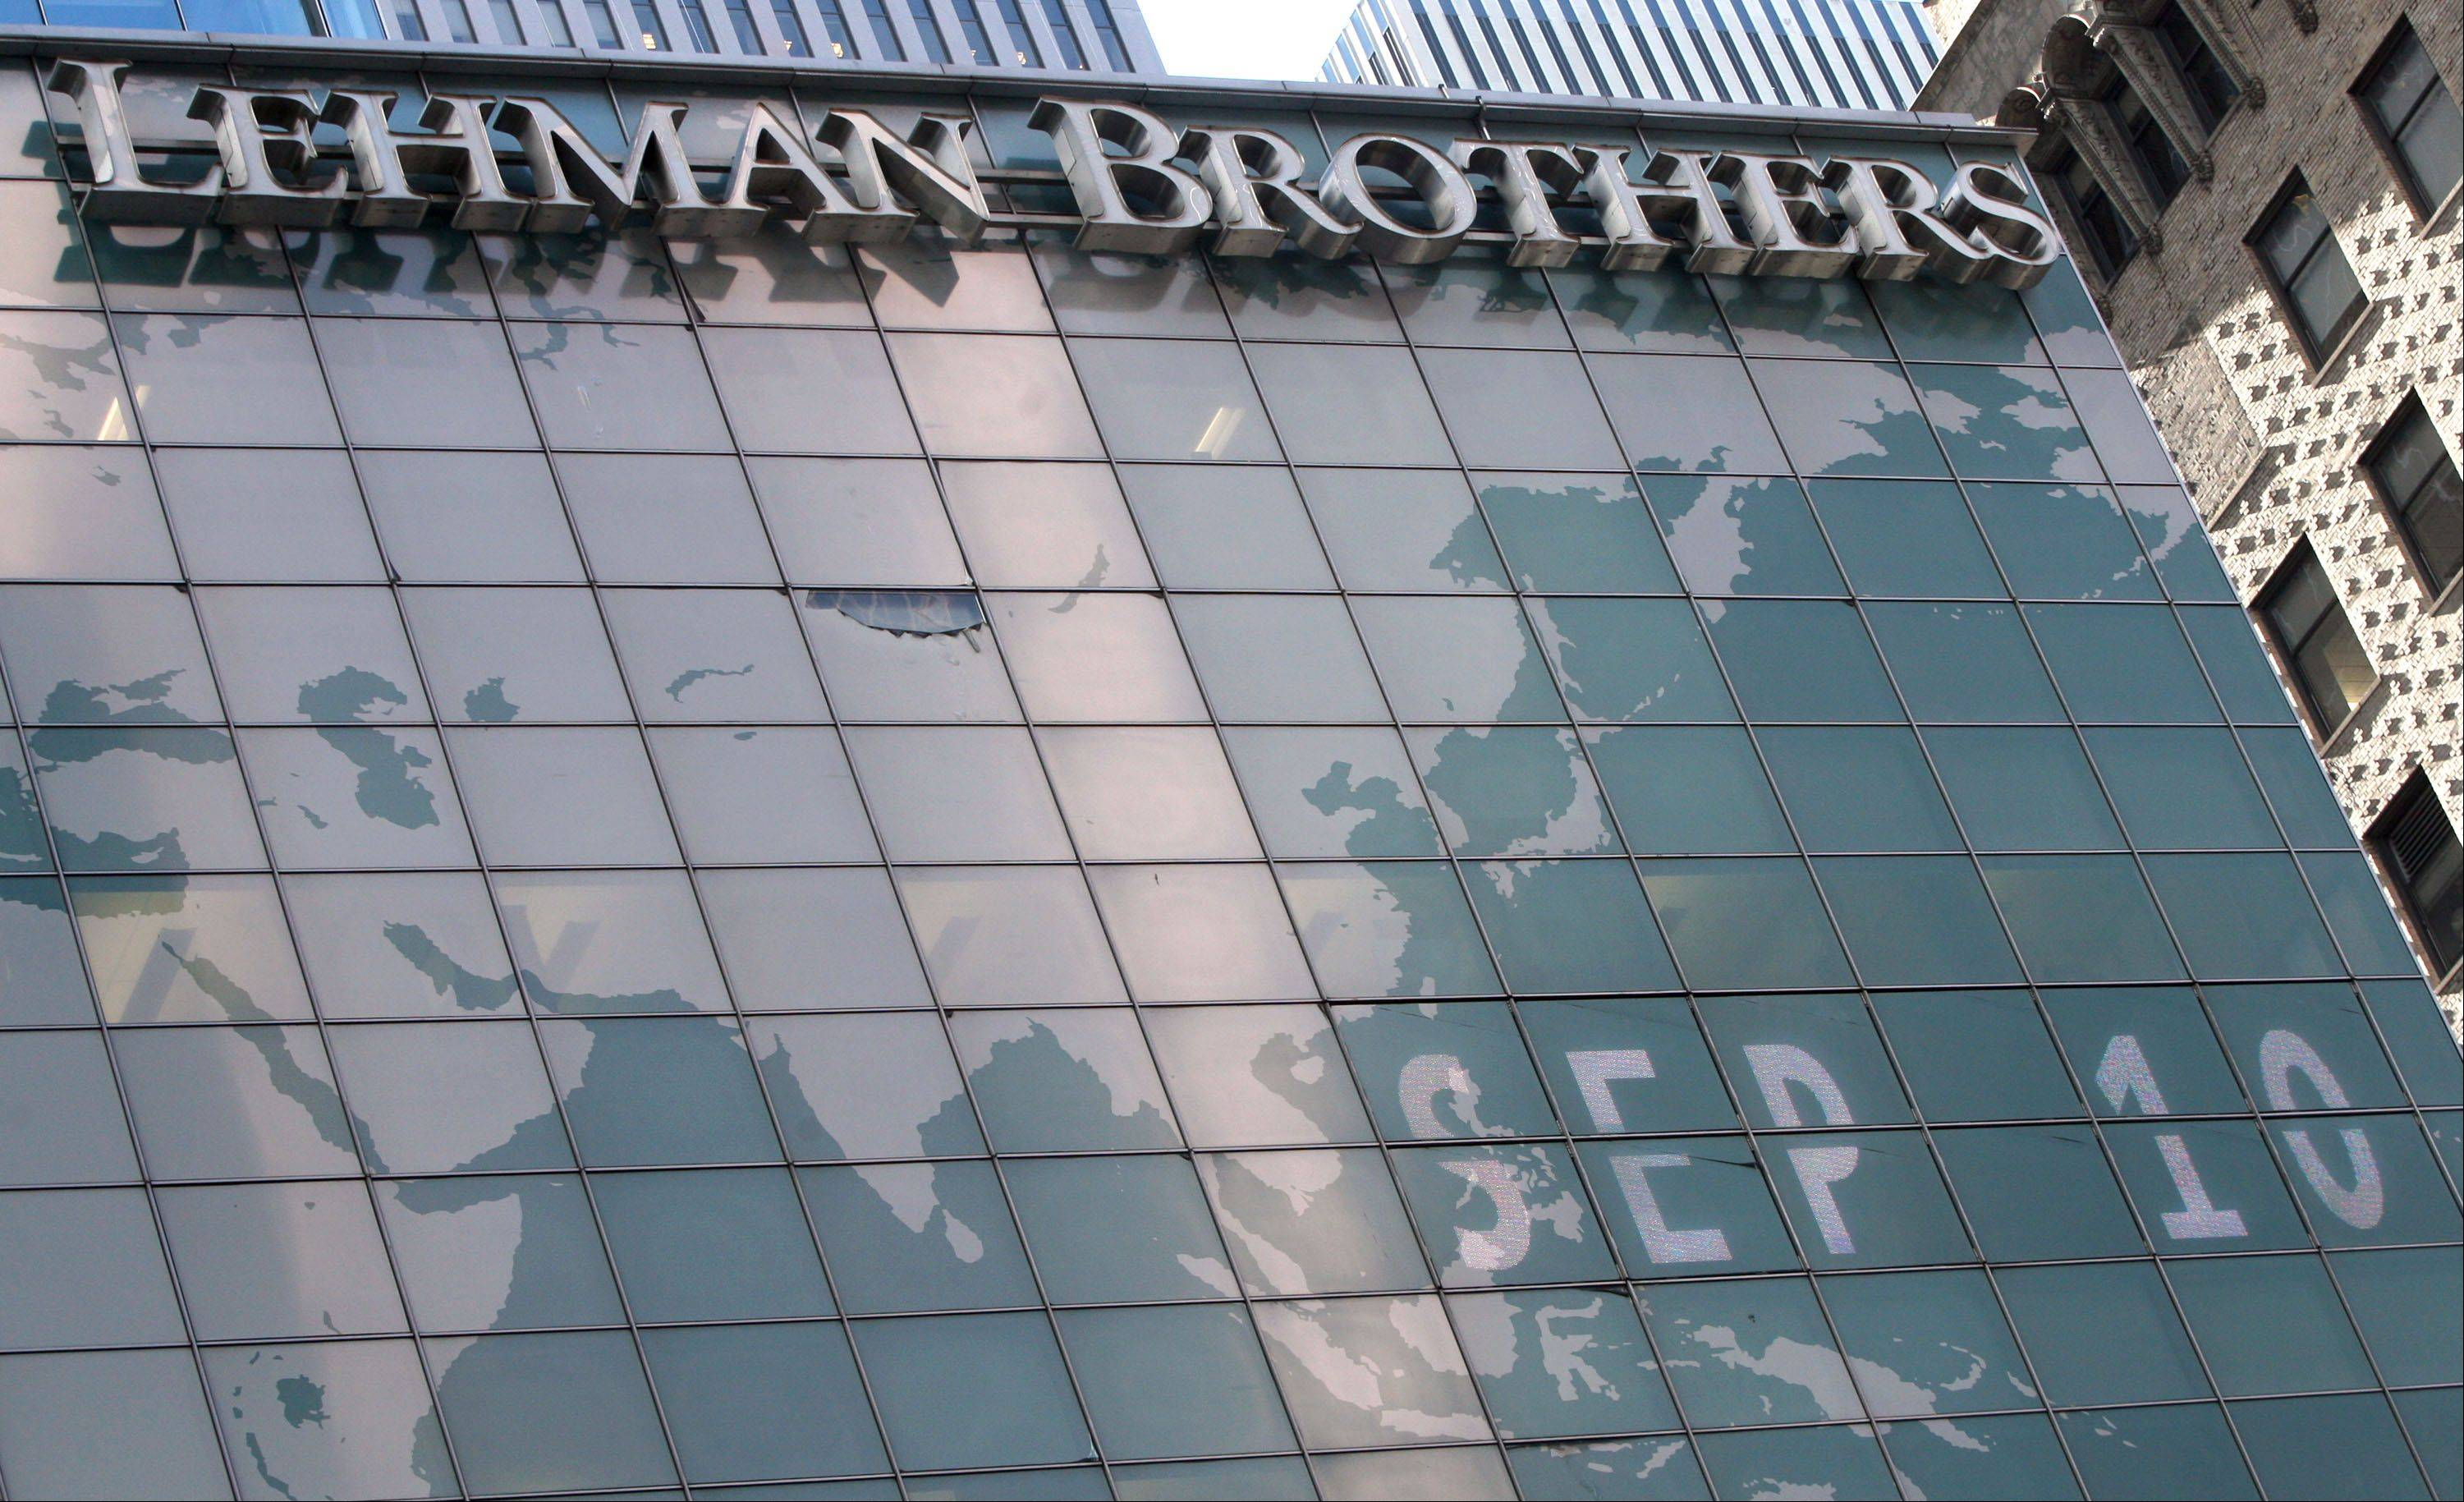 Lehman Brothers Holdings Inc. has reached a settlement with Fannie Mae that would allow the mortgage finance giant to recover about $537 million for its claim against the estate of the failed Wall Street bank over soured mortgage securities.